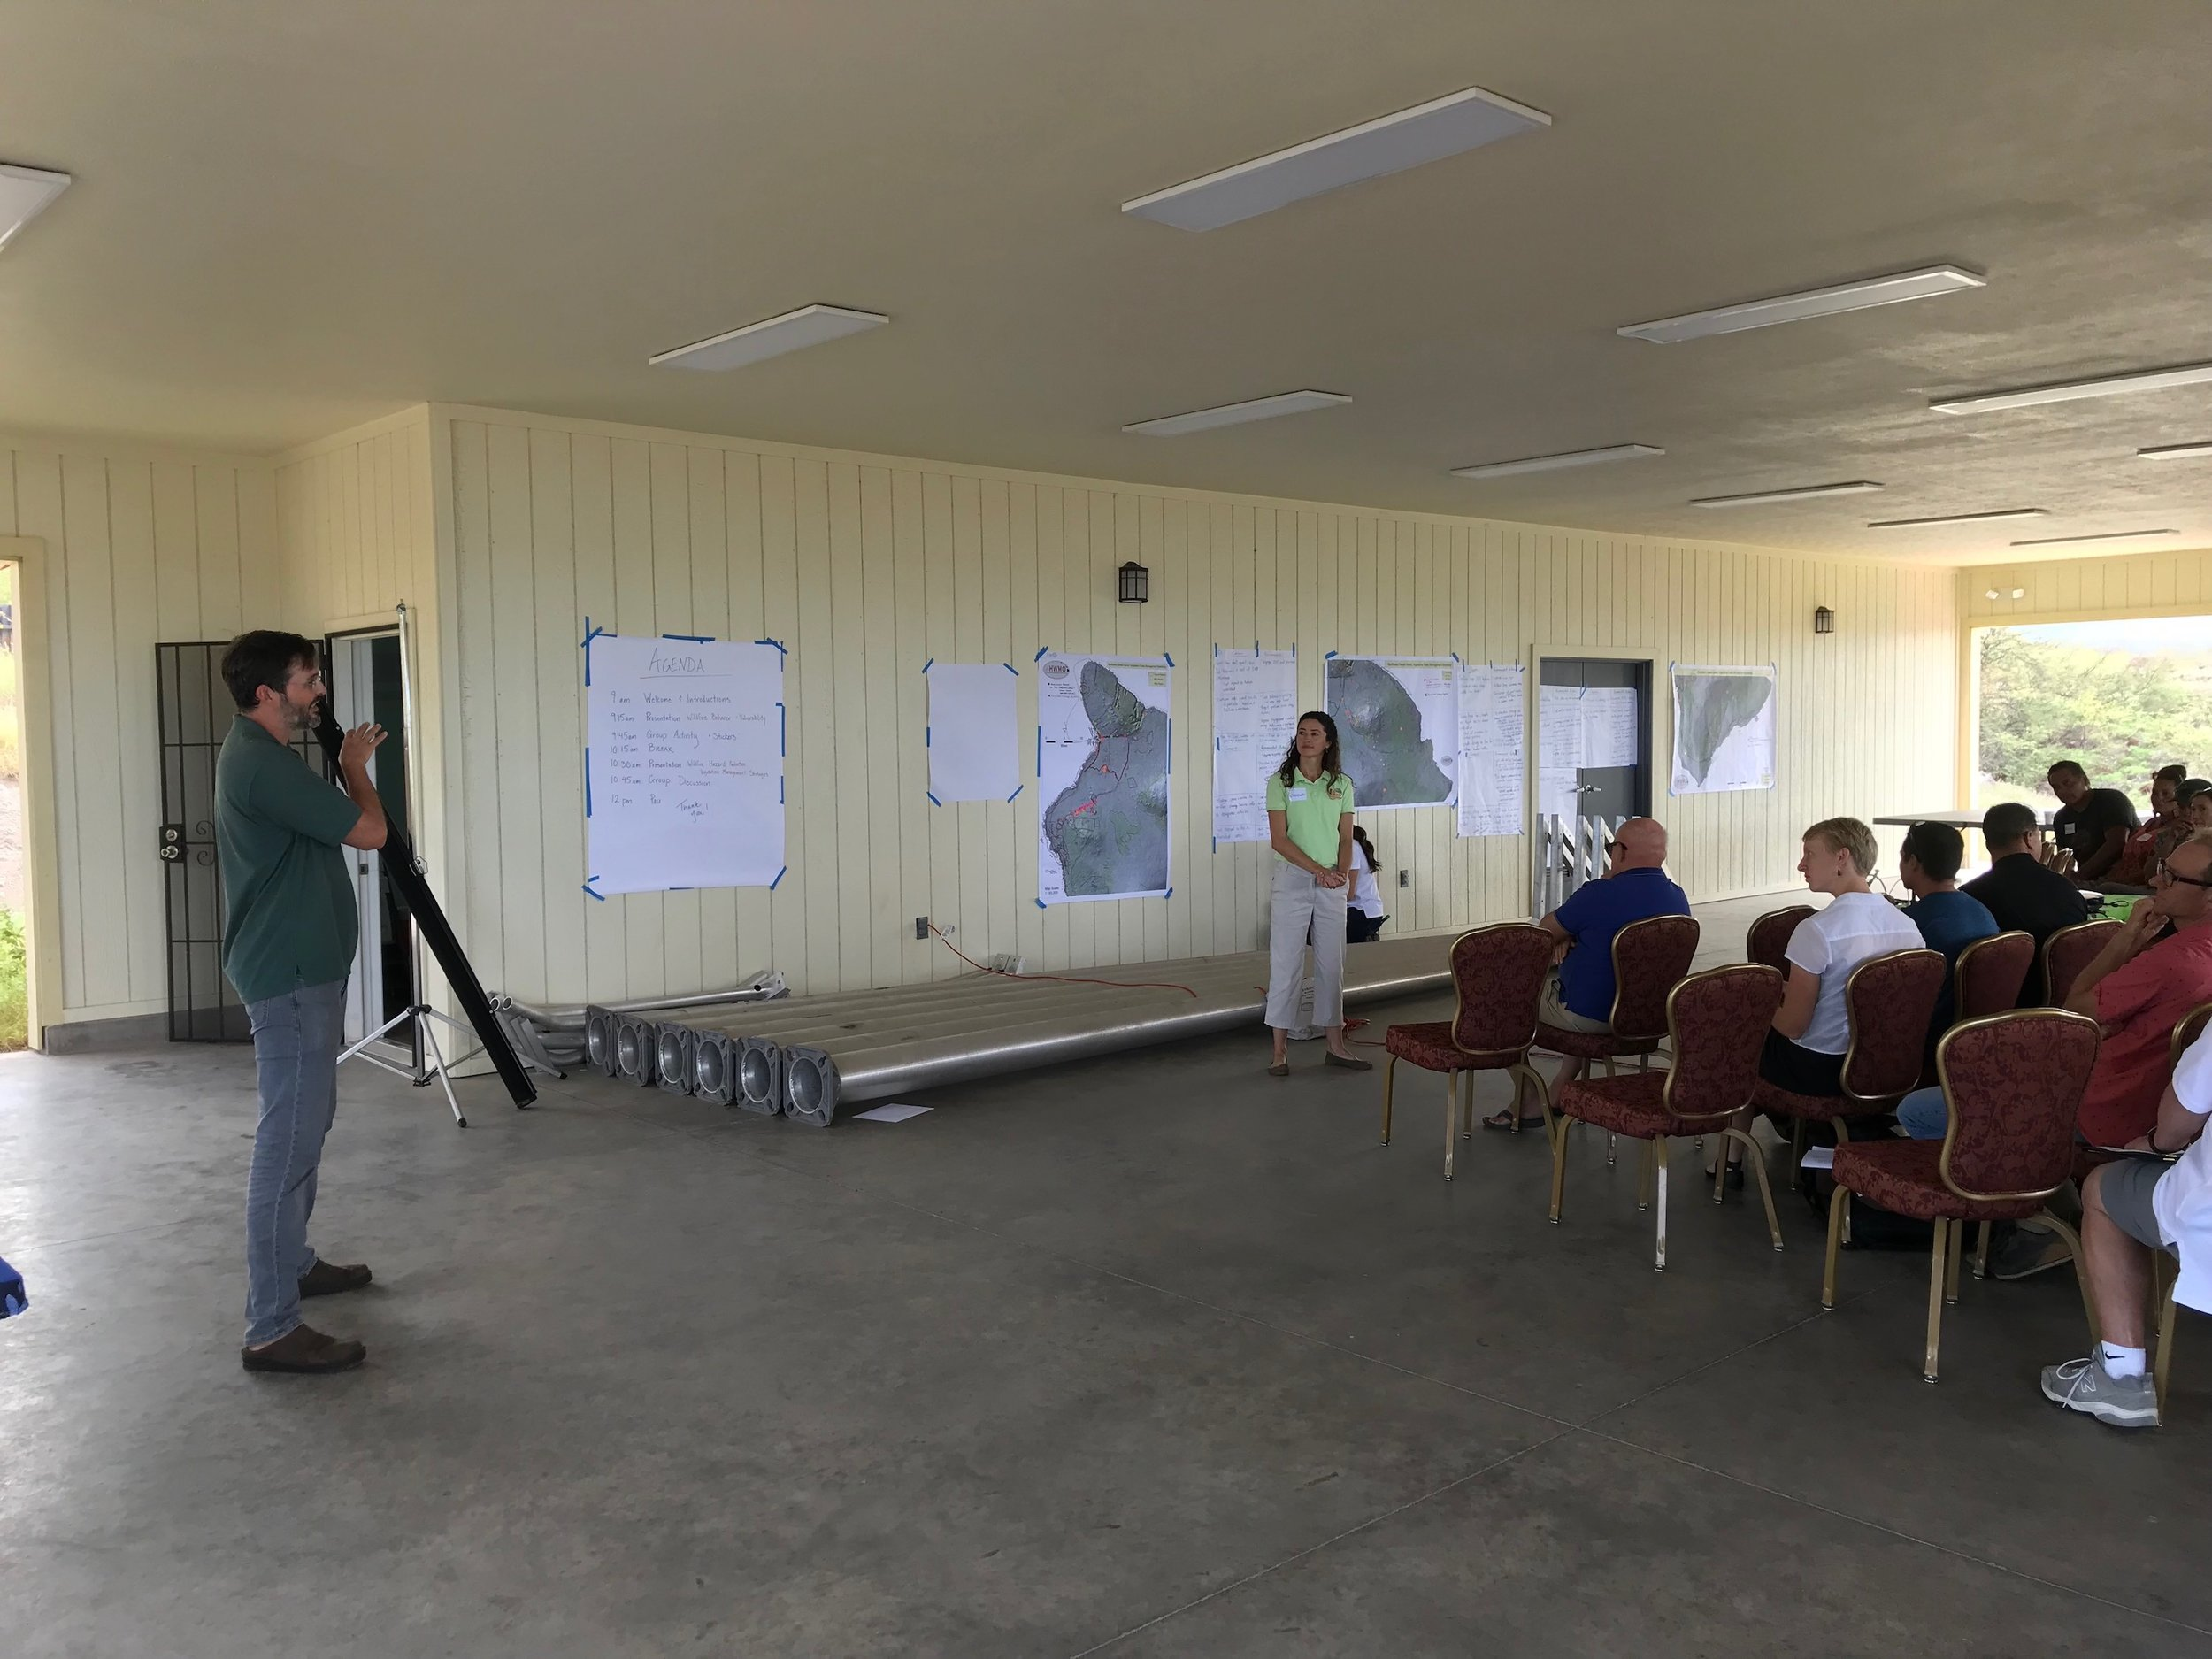 Hawaii Island Kailapa Vegetative Fuels Management Collaborative Action Planning Workshop_2_26_2019_69.jpg